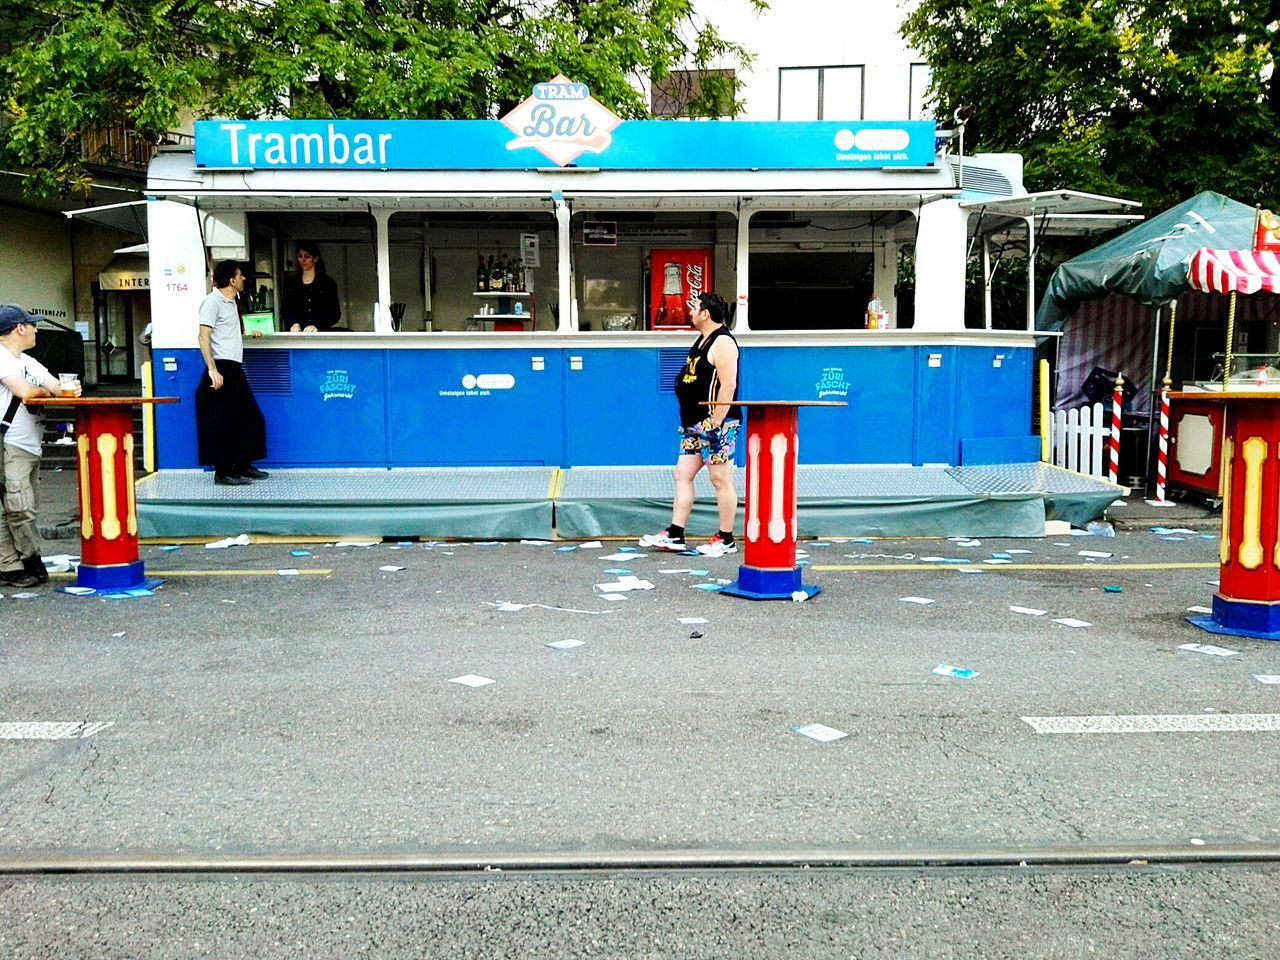 Tram Bar Blau Weiss Zürich Waiting Frontal Shot Food Wagon Scenery Shots Zürifäscht 2016 Impressions